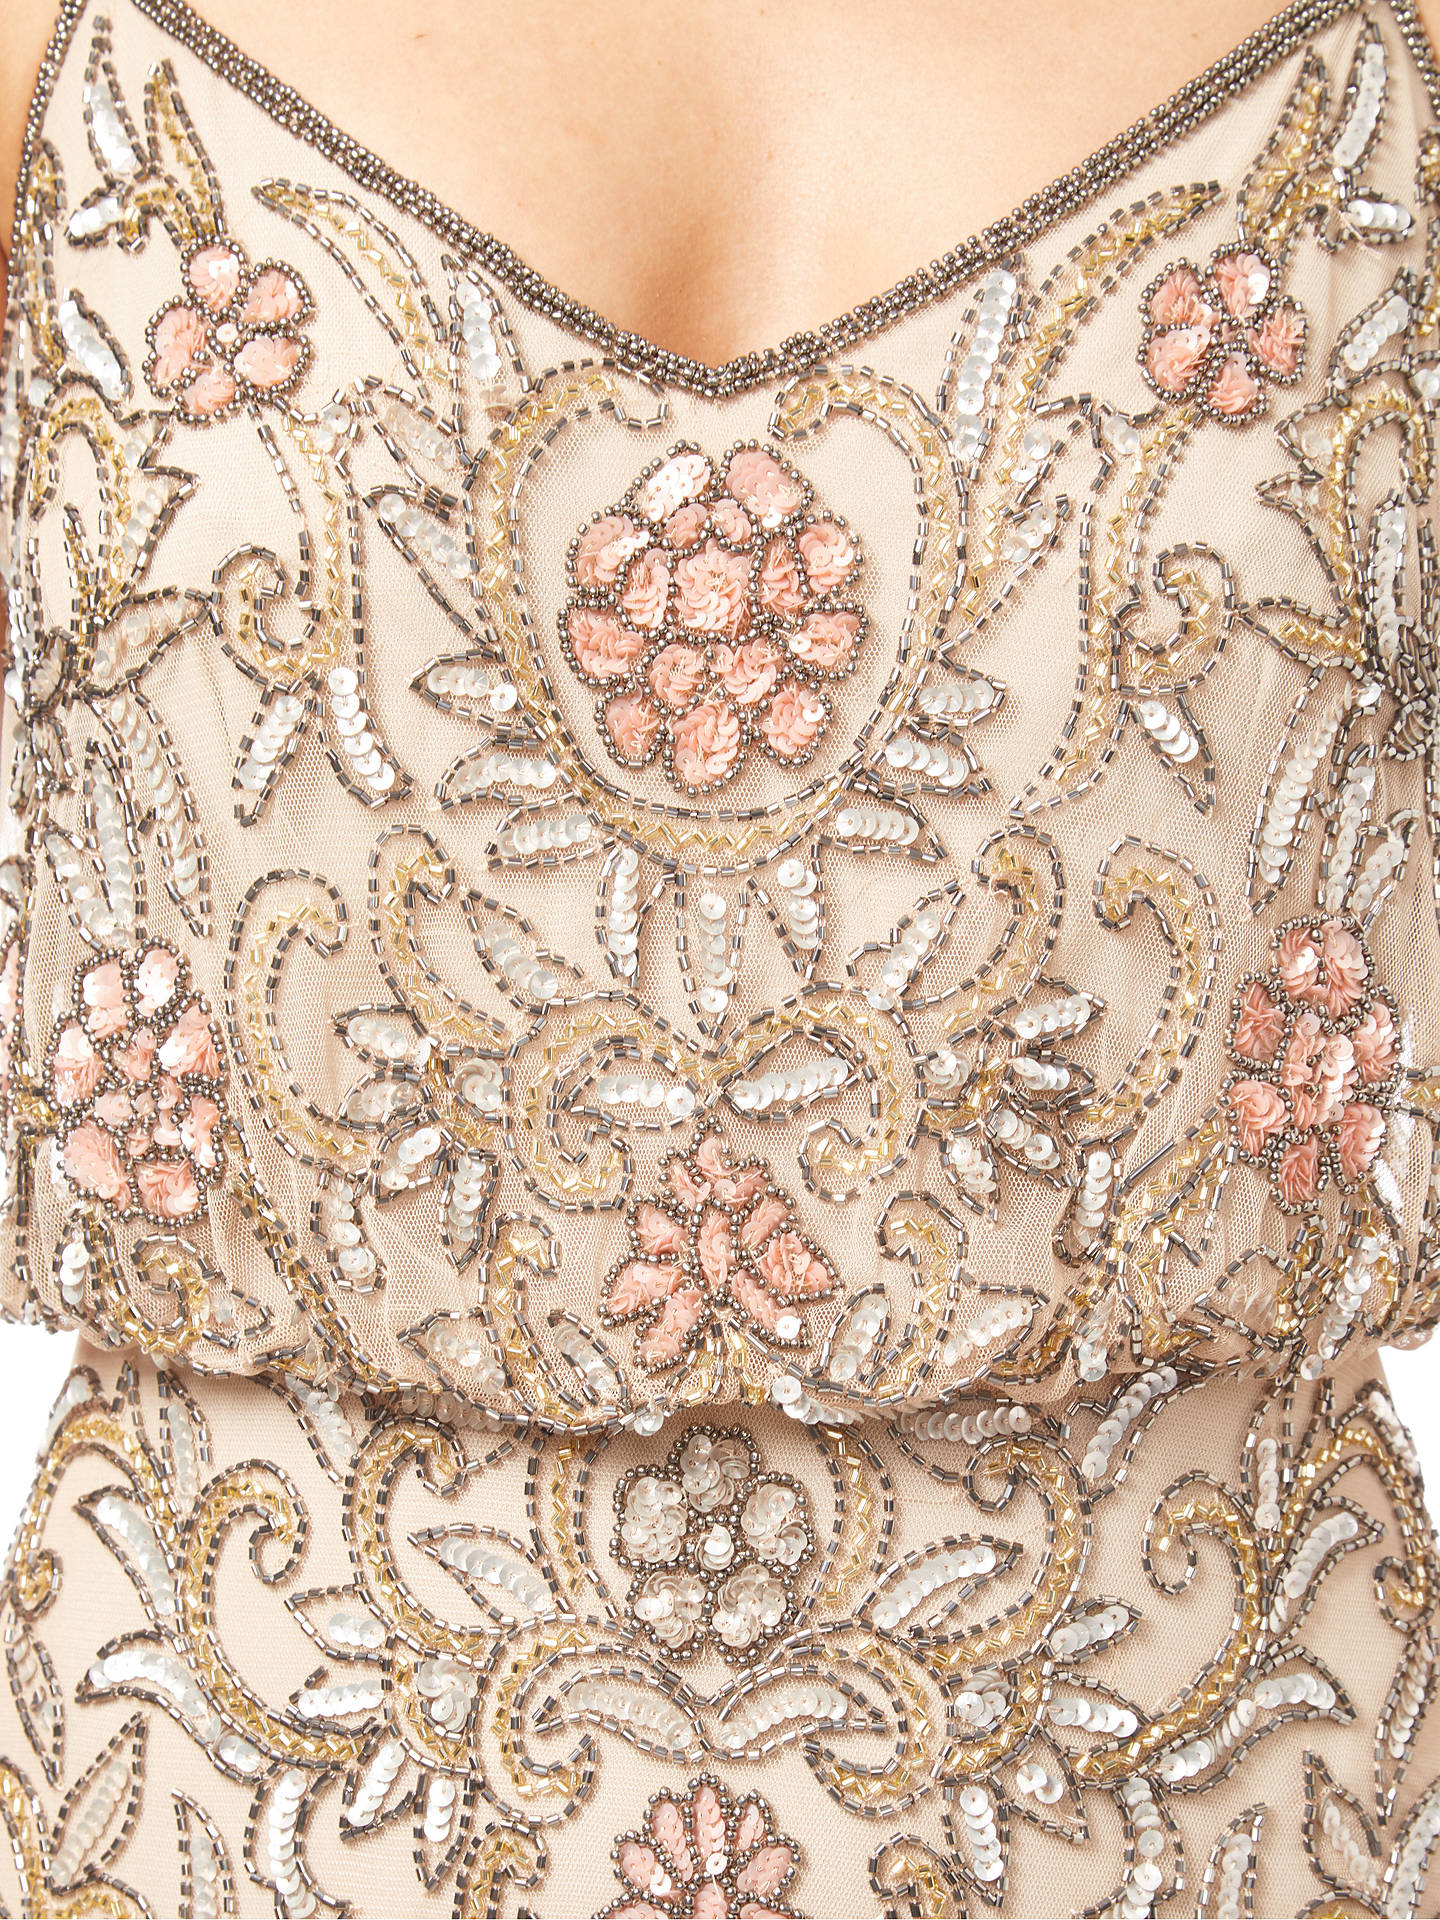 BuyAdrianna Papell Beaded Floral Dress, Nude, 16 Online at johnlewis.com